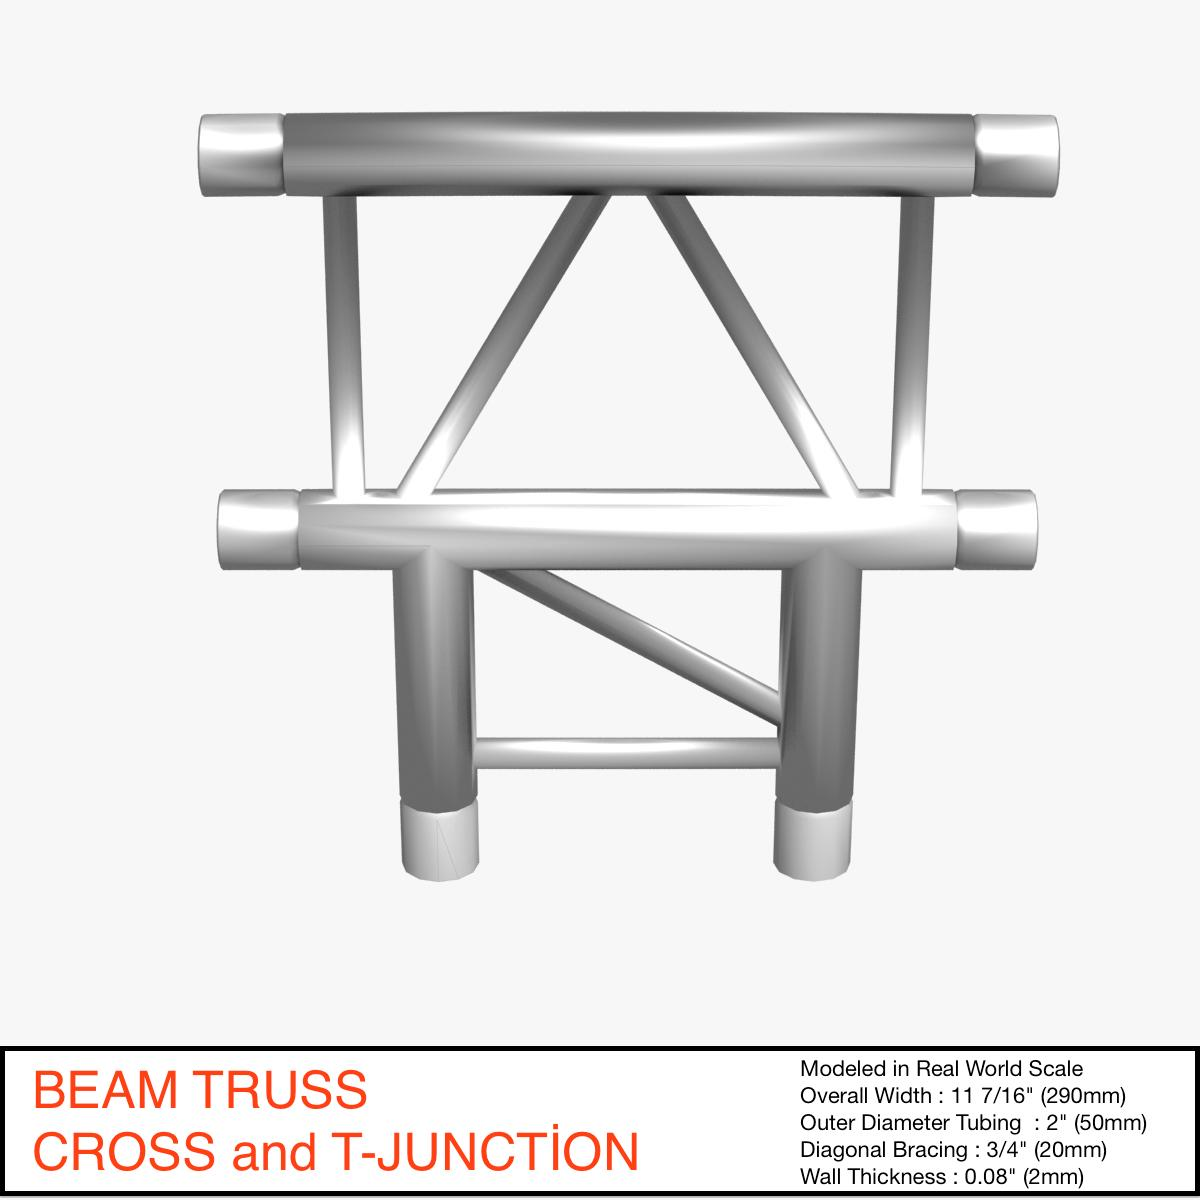 beam truss cross and t junction 134 3d model 3ds max dxf fbx c4d  obj 268776